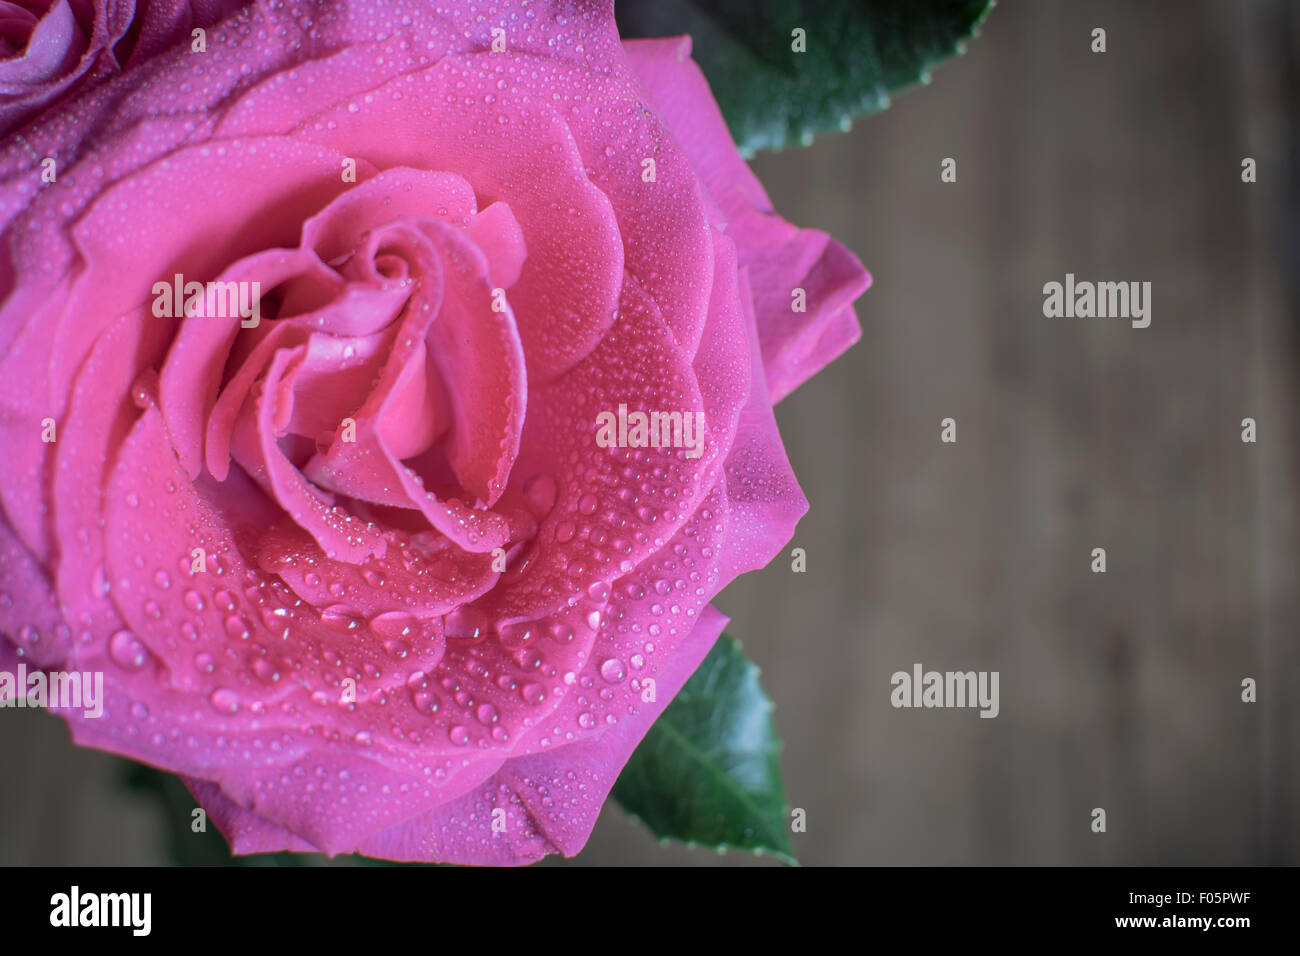 Close up of Pink Rose with moisture drops against a wooden wall - Stock Image